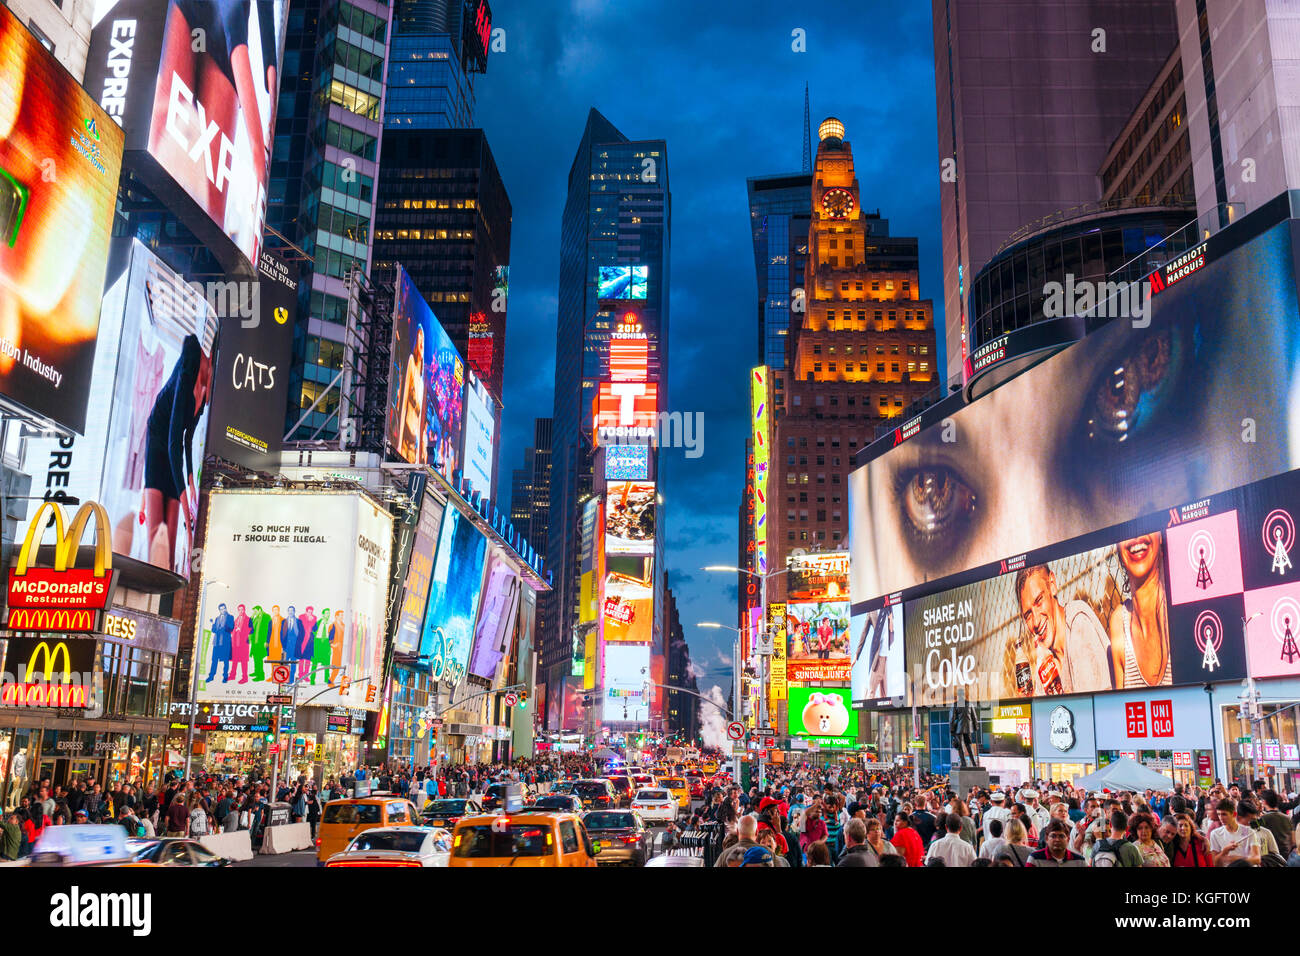 New york usa new york Times square busy crowded with tourists manhatten New york USA America United states of america - Stock Image